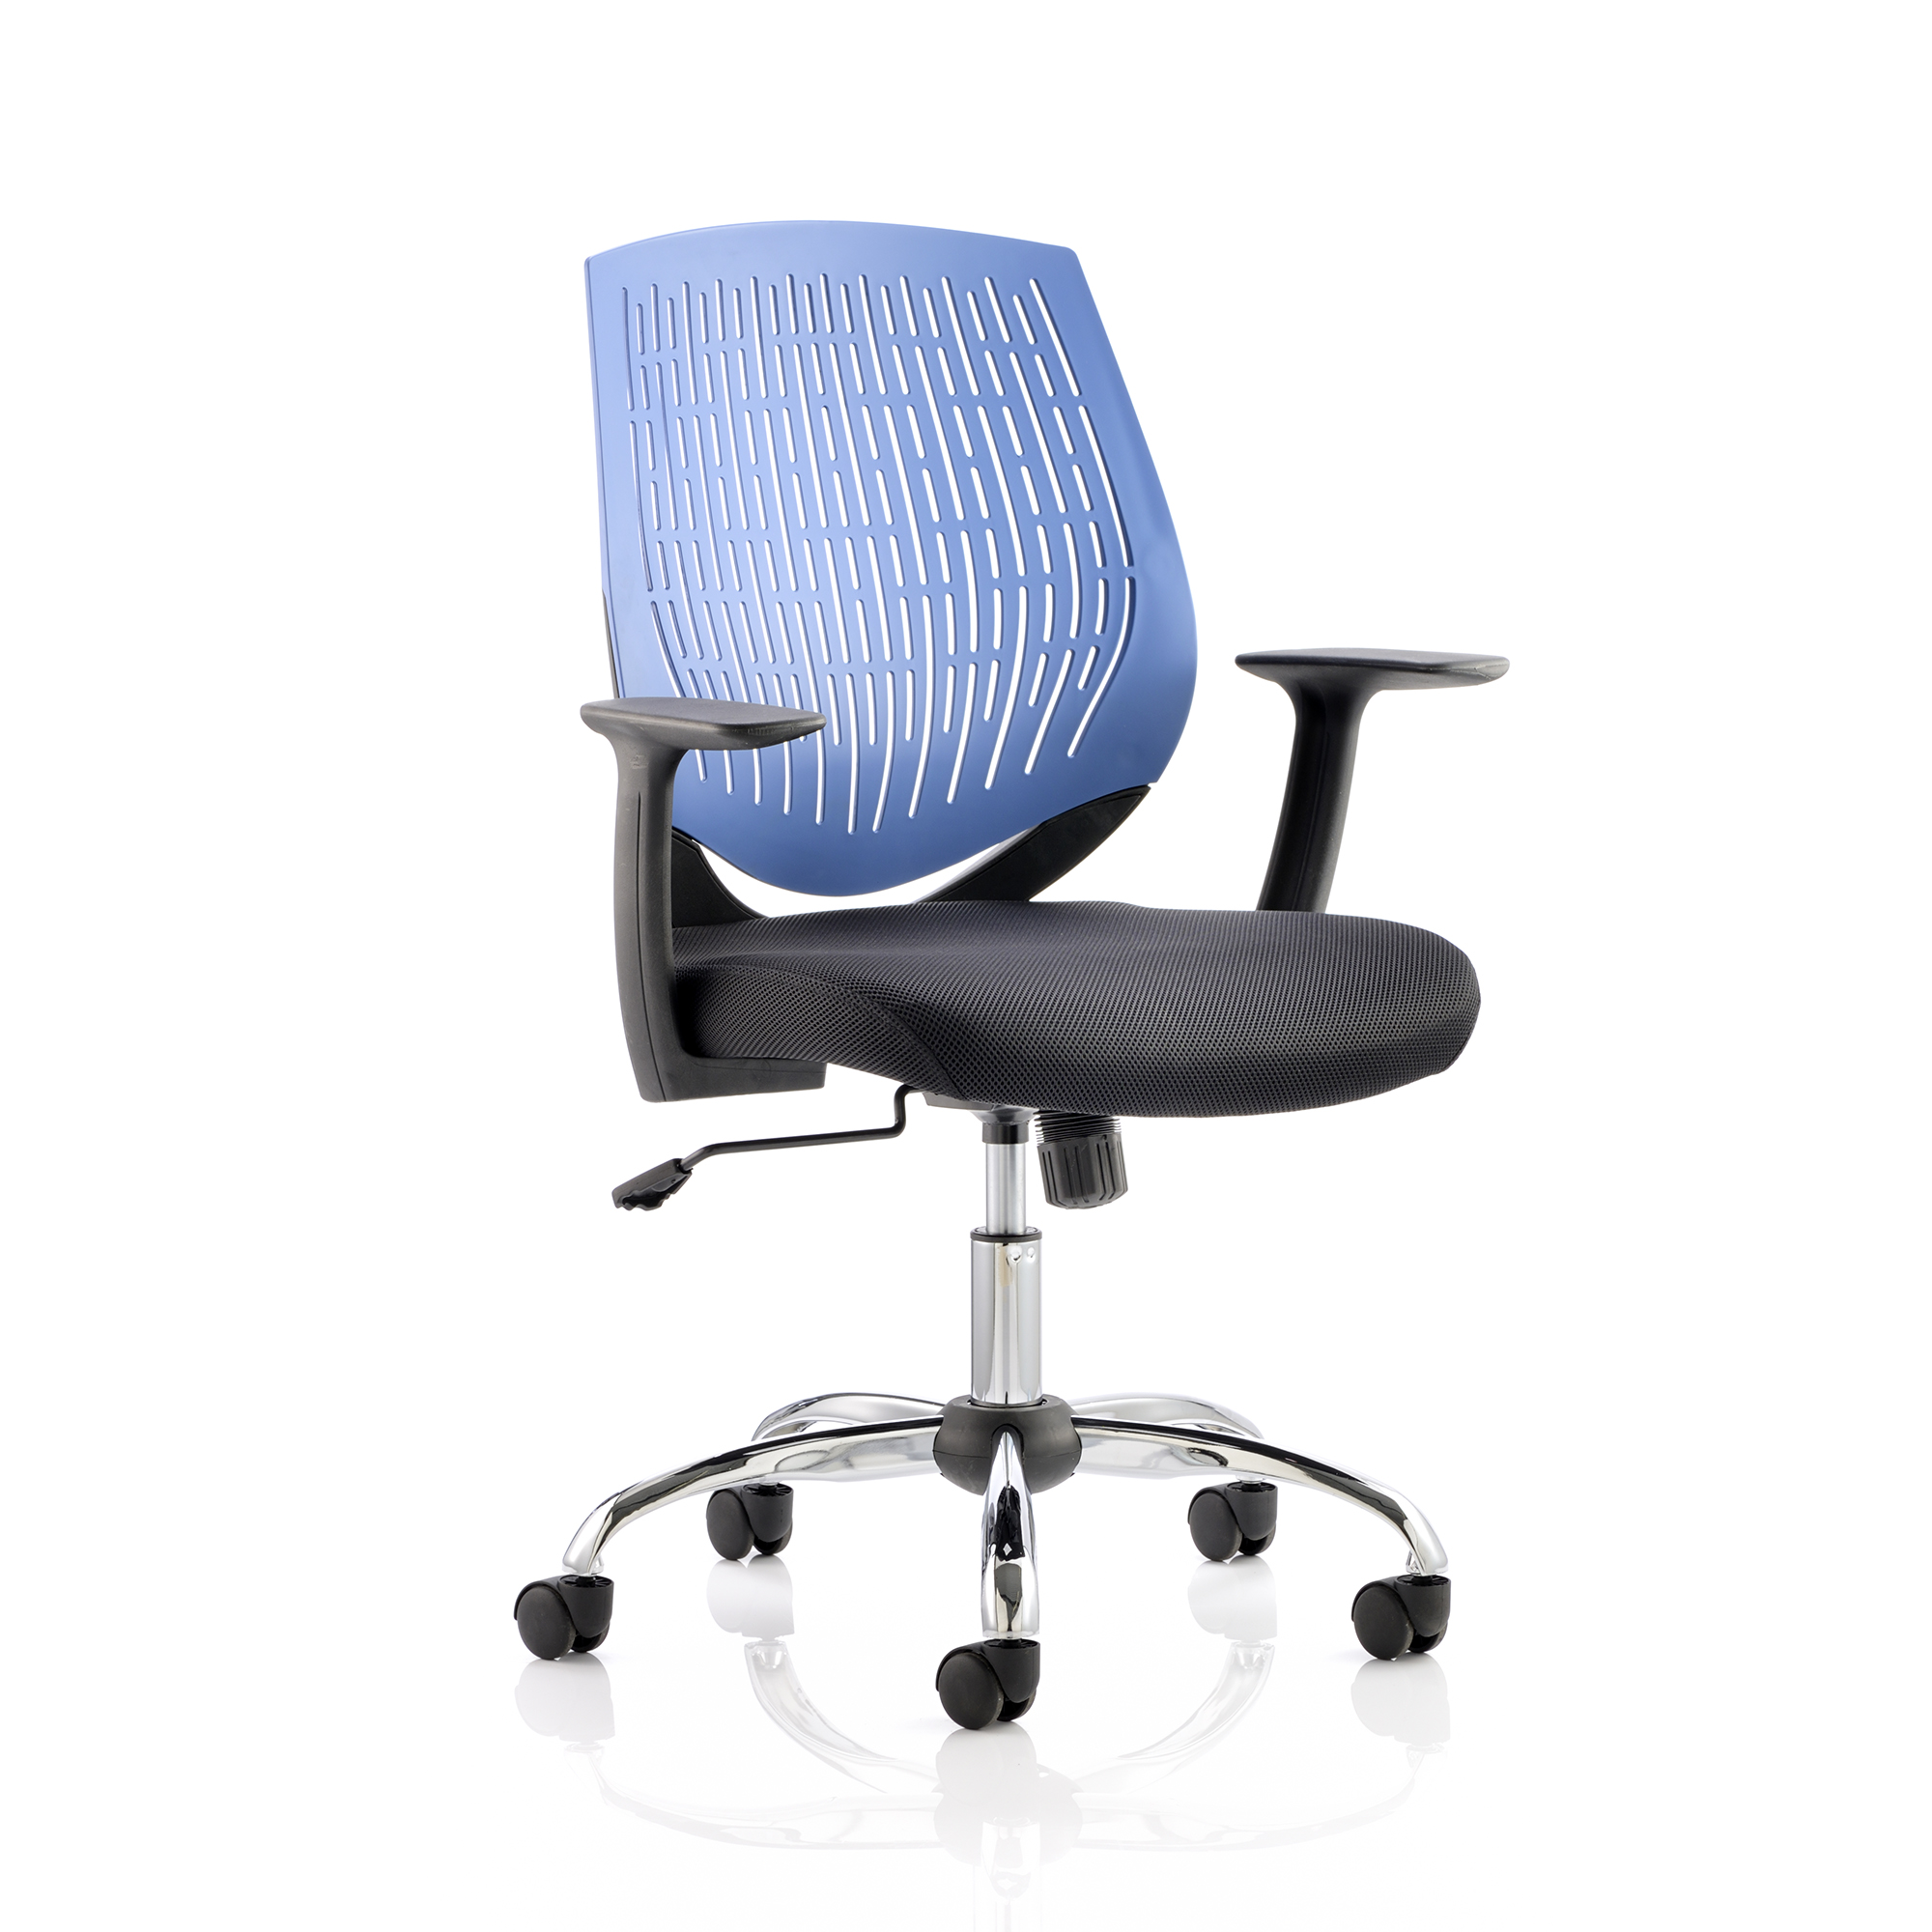 Guest seating 5 Star Office Dura Task Operator Chair With Arms Blue Ref OP000015